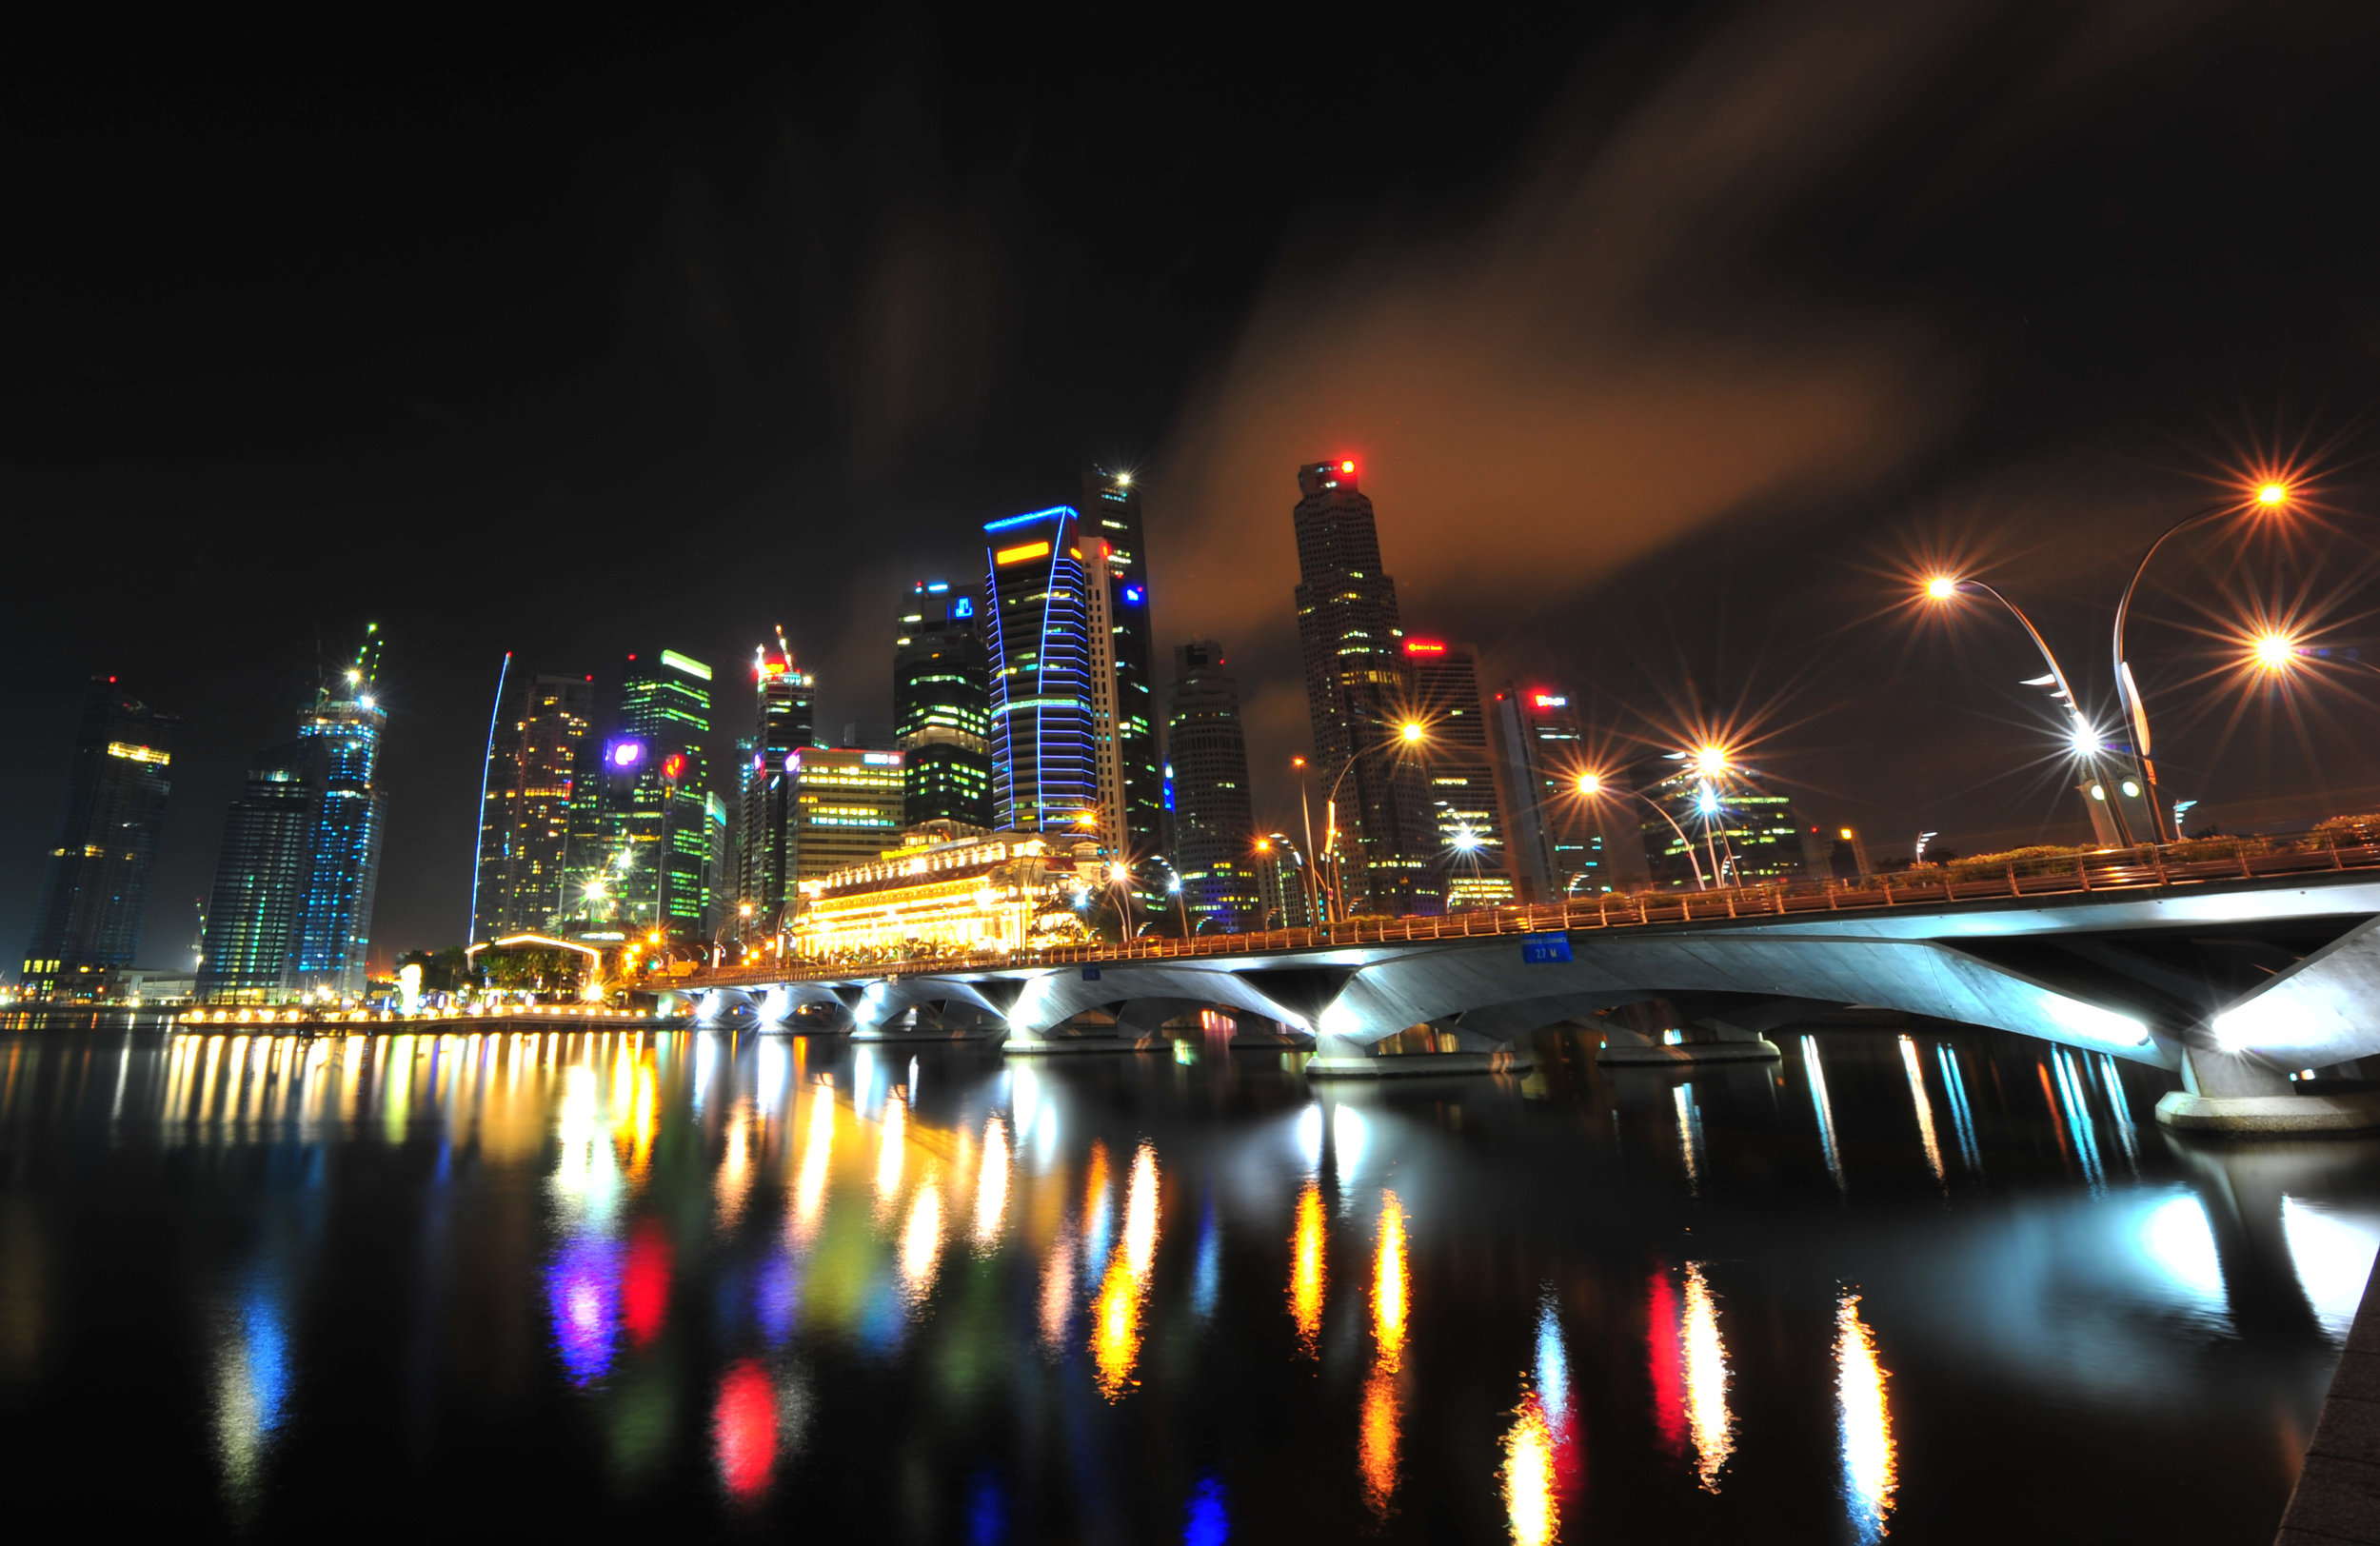 The skyline of Singapore comes alive at night. Image credit:  Mike Behnken / Creative Commons